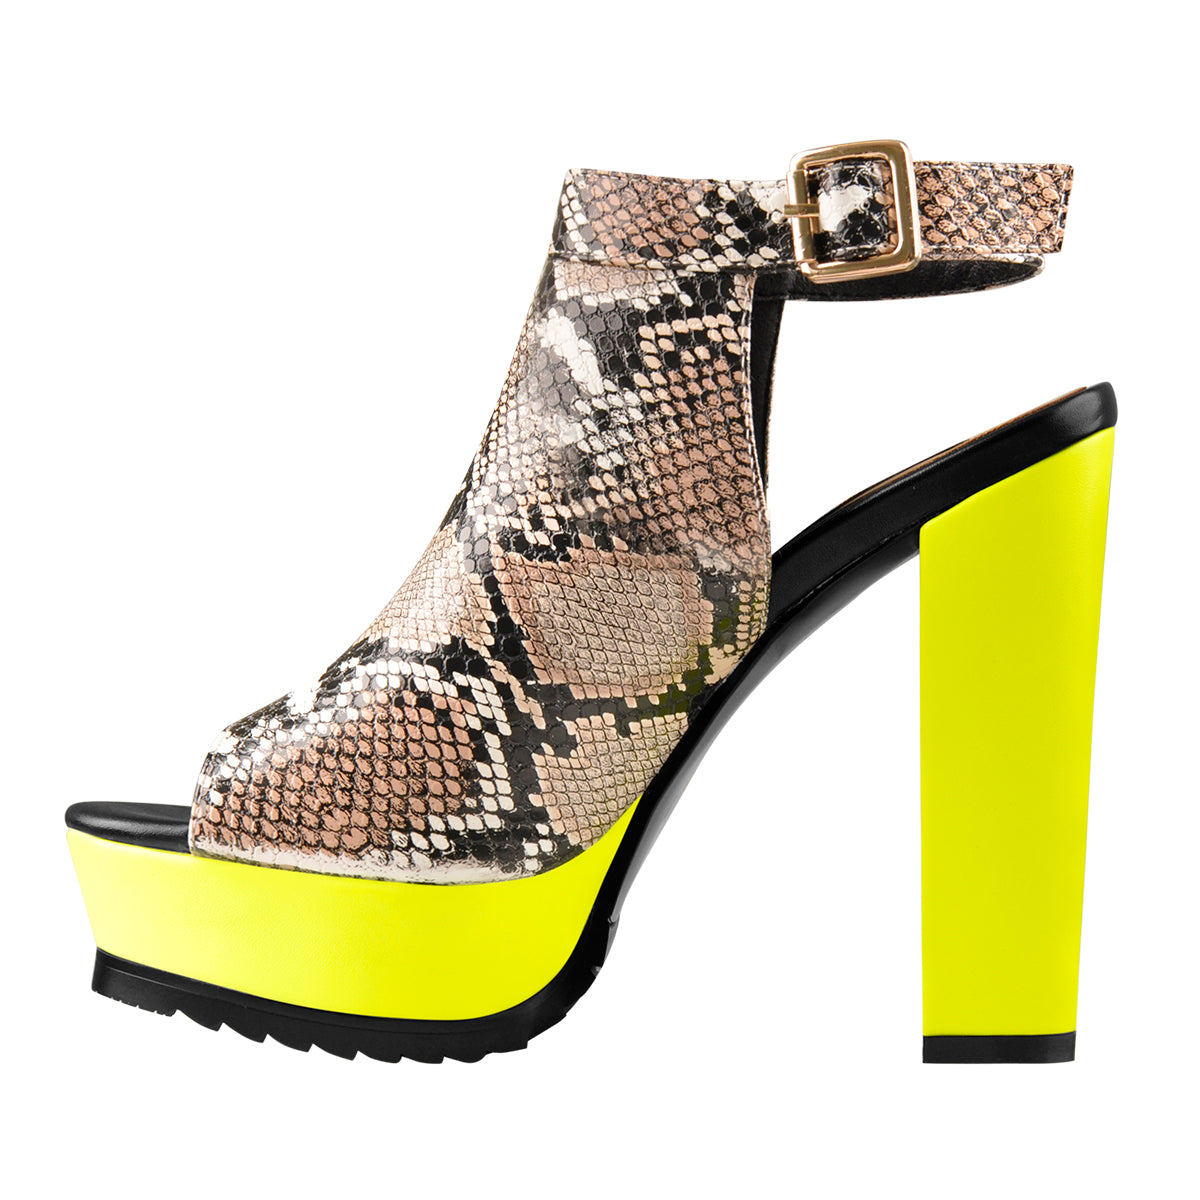 Snake Print Peep Toe Slingbacks Ankle Boots With Yellow Platform